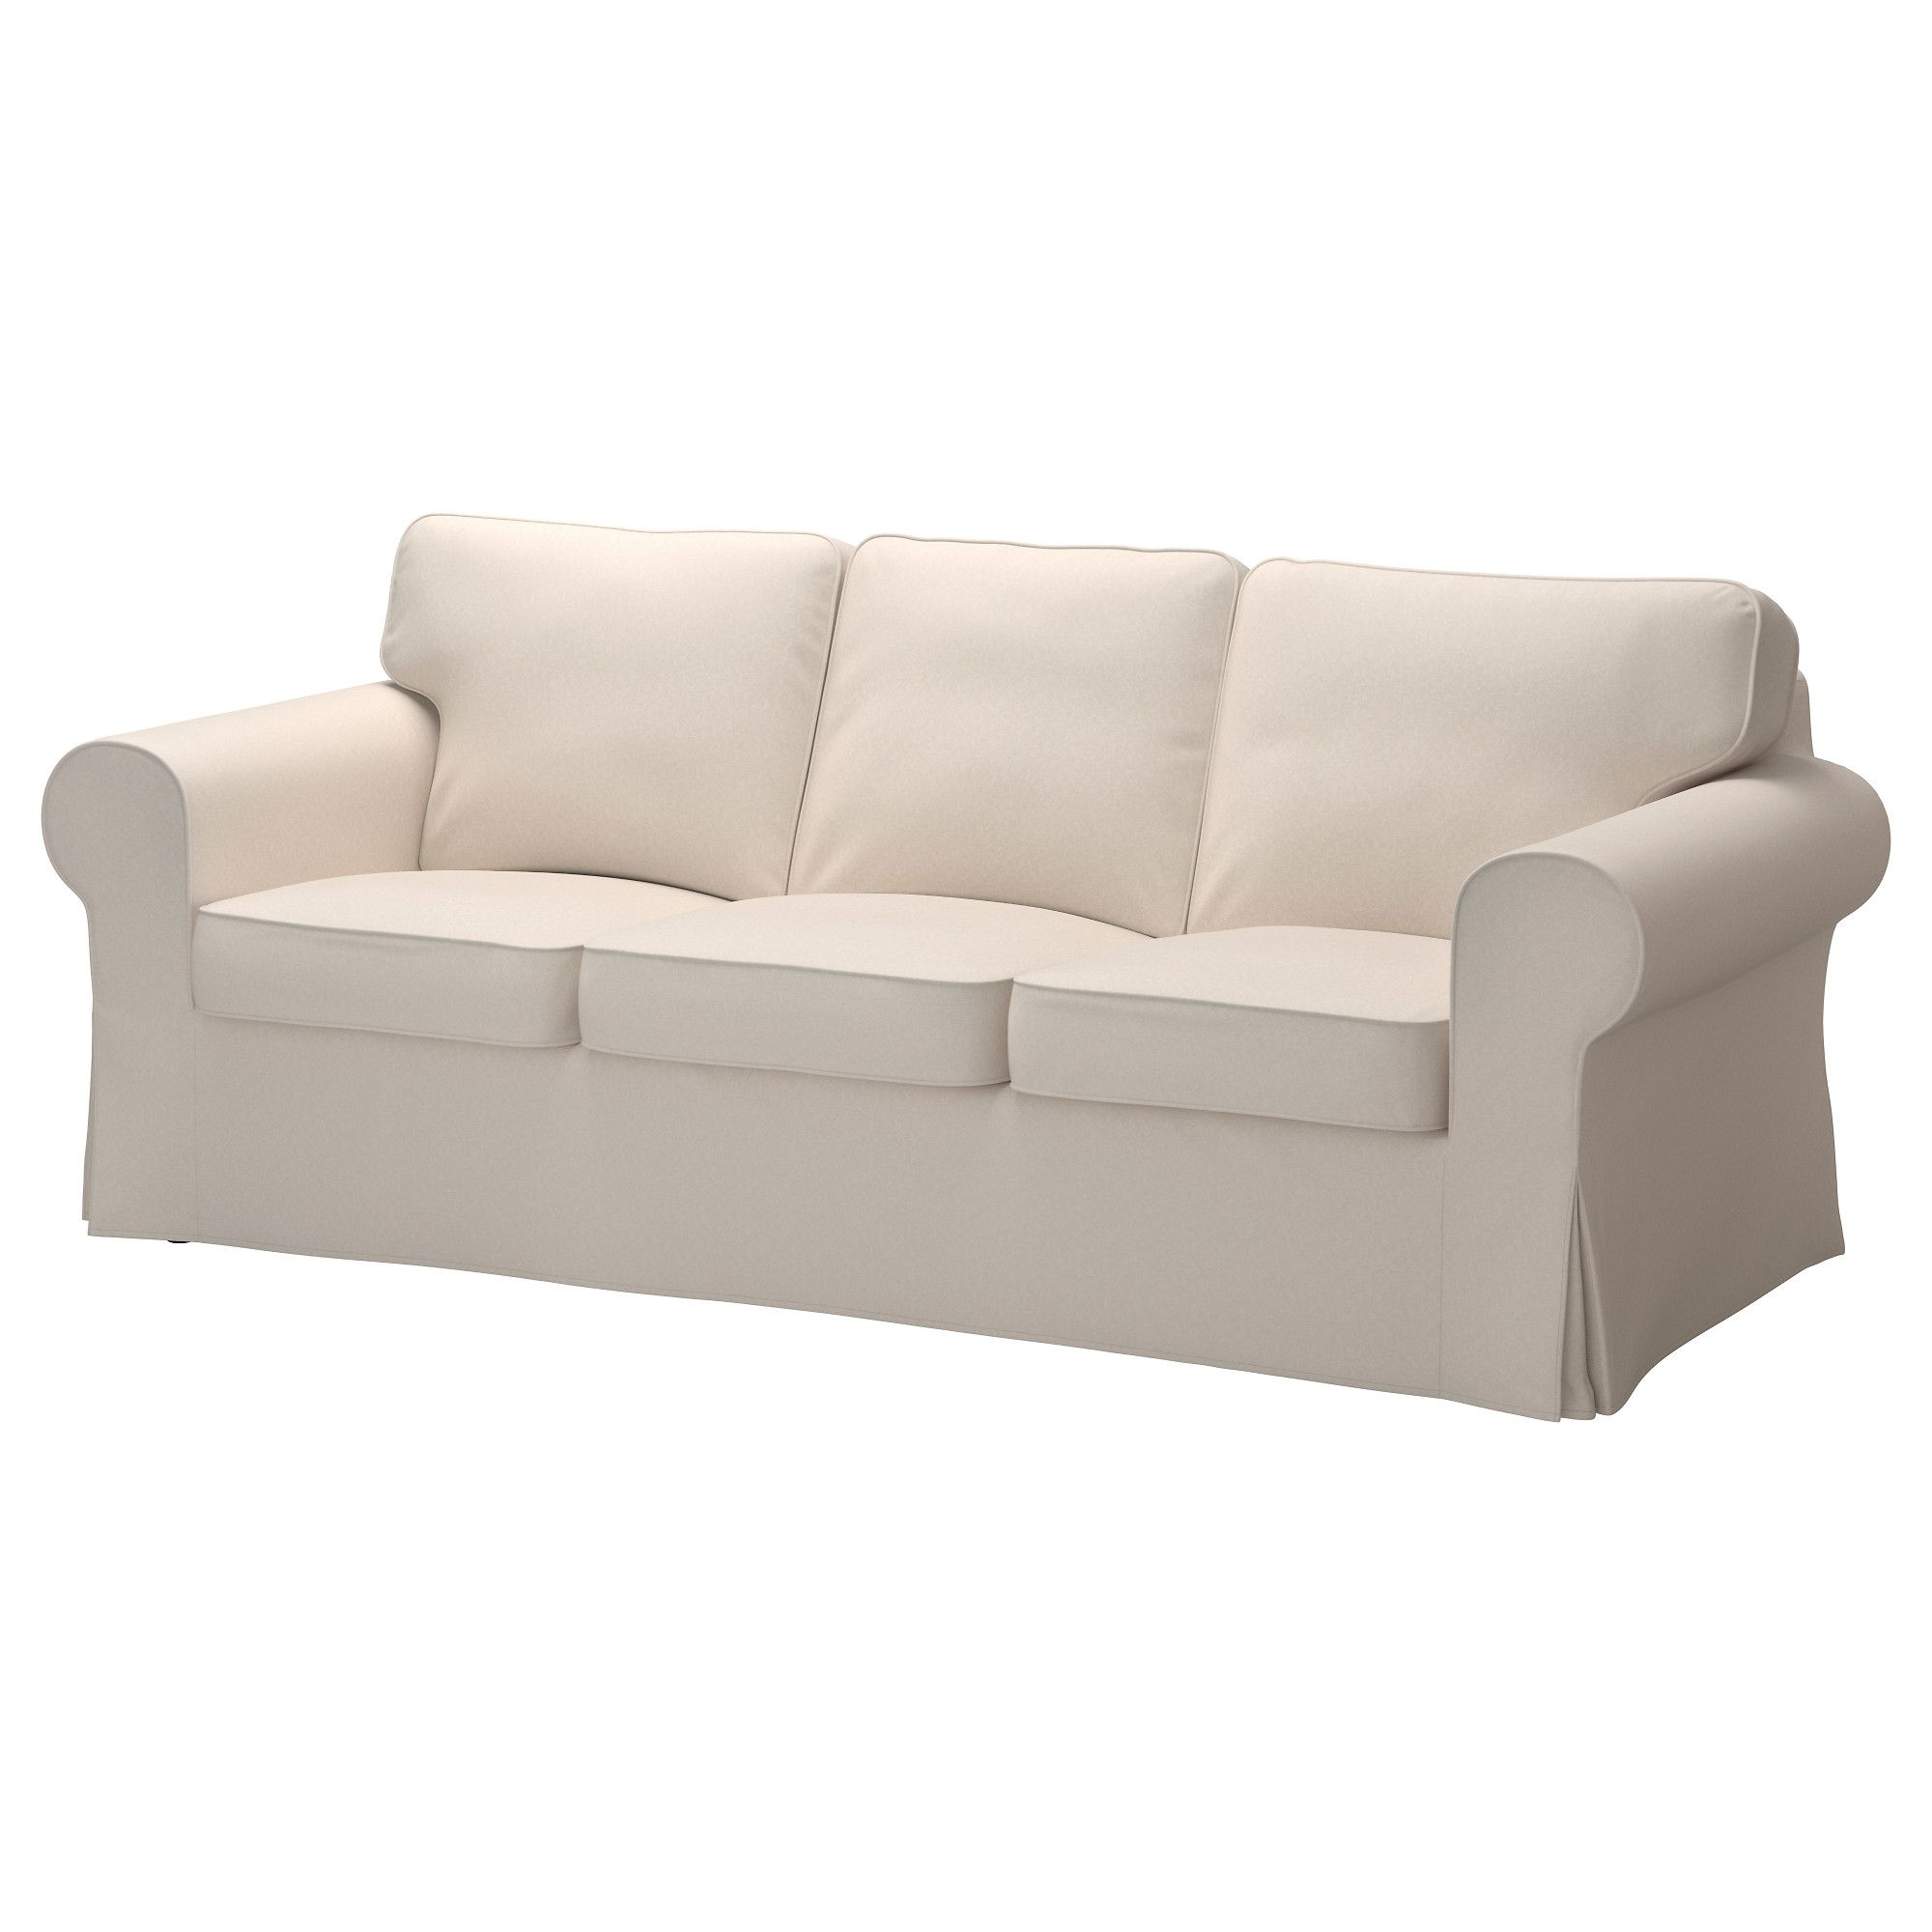 EKTORP Sofa Lofallet beige Ektorp sofa Cushion filling and Seat